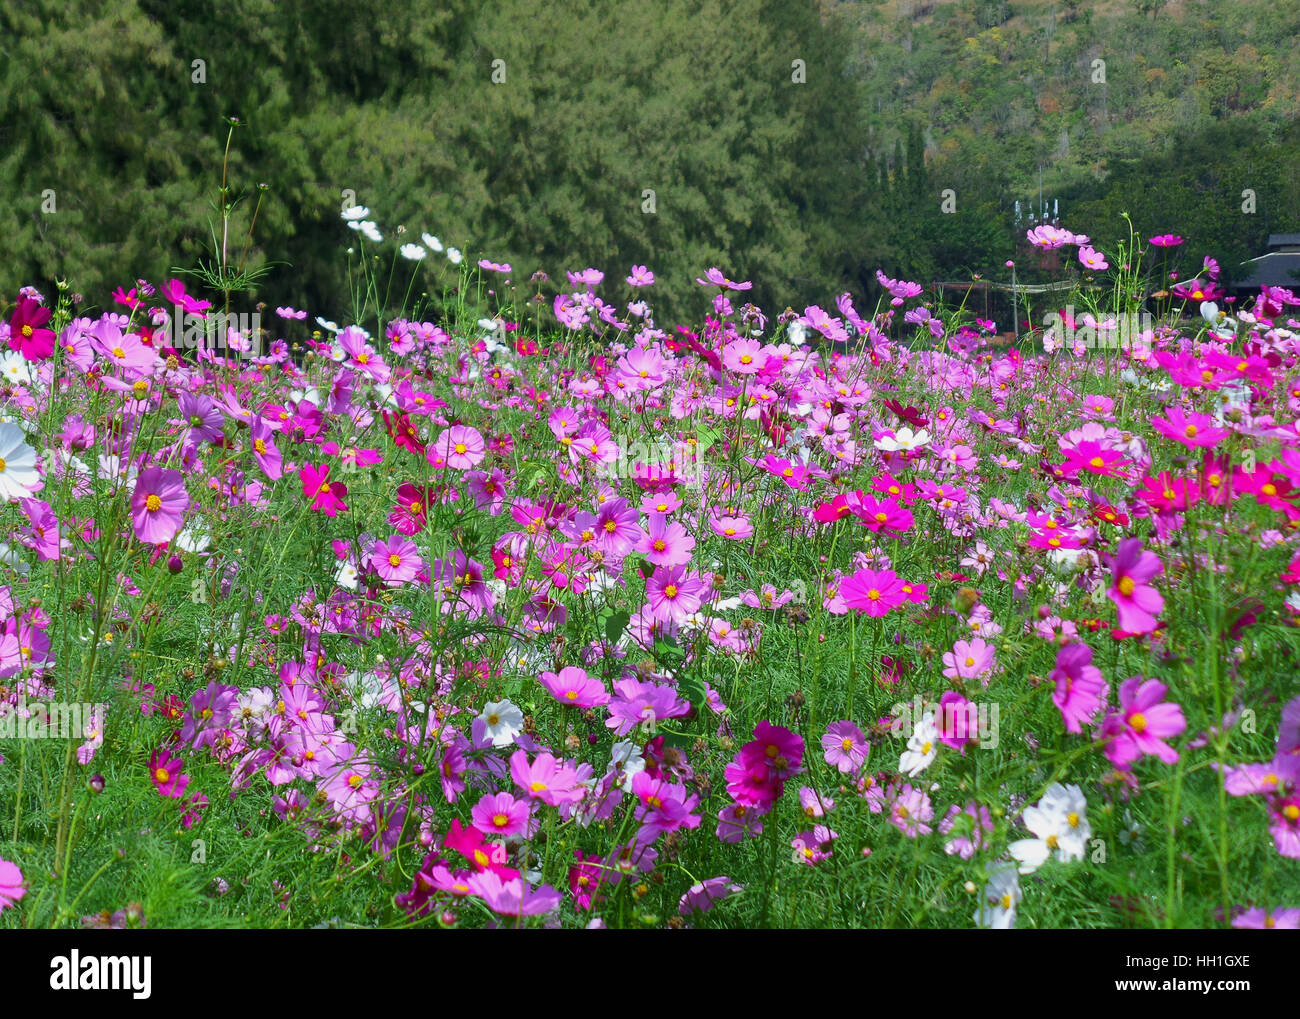 Blooming Pink Cosmos Field at the Foothill Covered with Green Foliage, Northeastern of Thailand - Stock Image